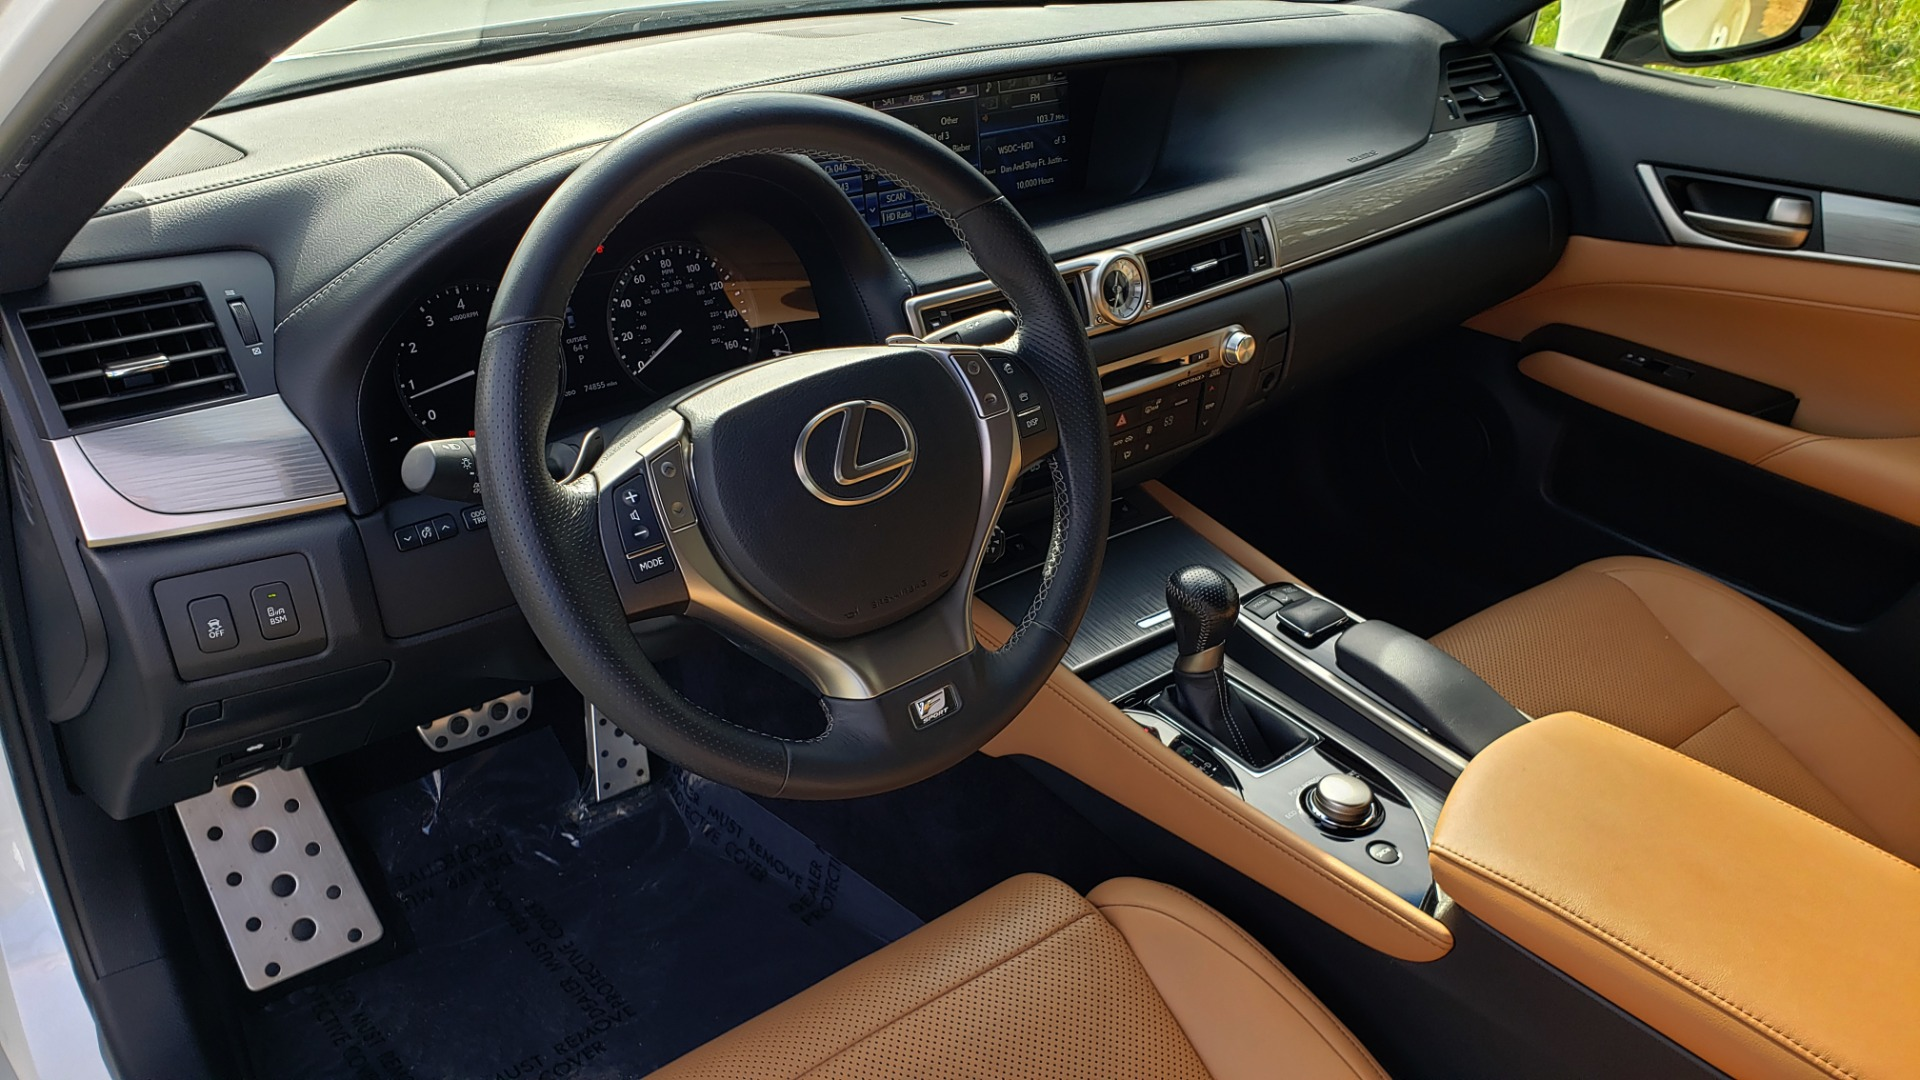 Used 2013 Lexus GS 350 F-SPORT / NAV / SUNROOF / BSM / PRK ASST / REARVIEW for sale Sold at Formula Imports in Charlotte NC 28227 31